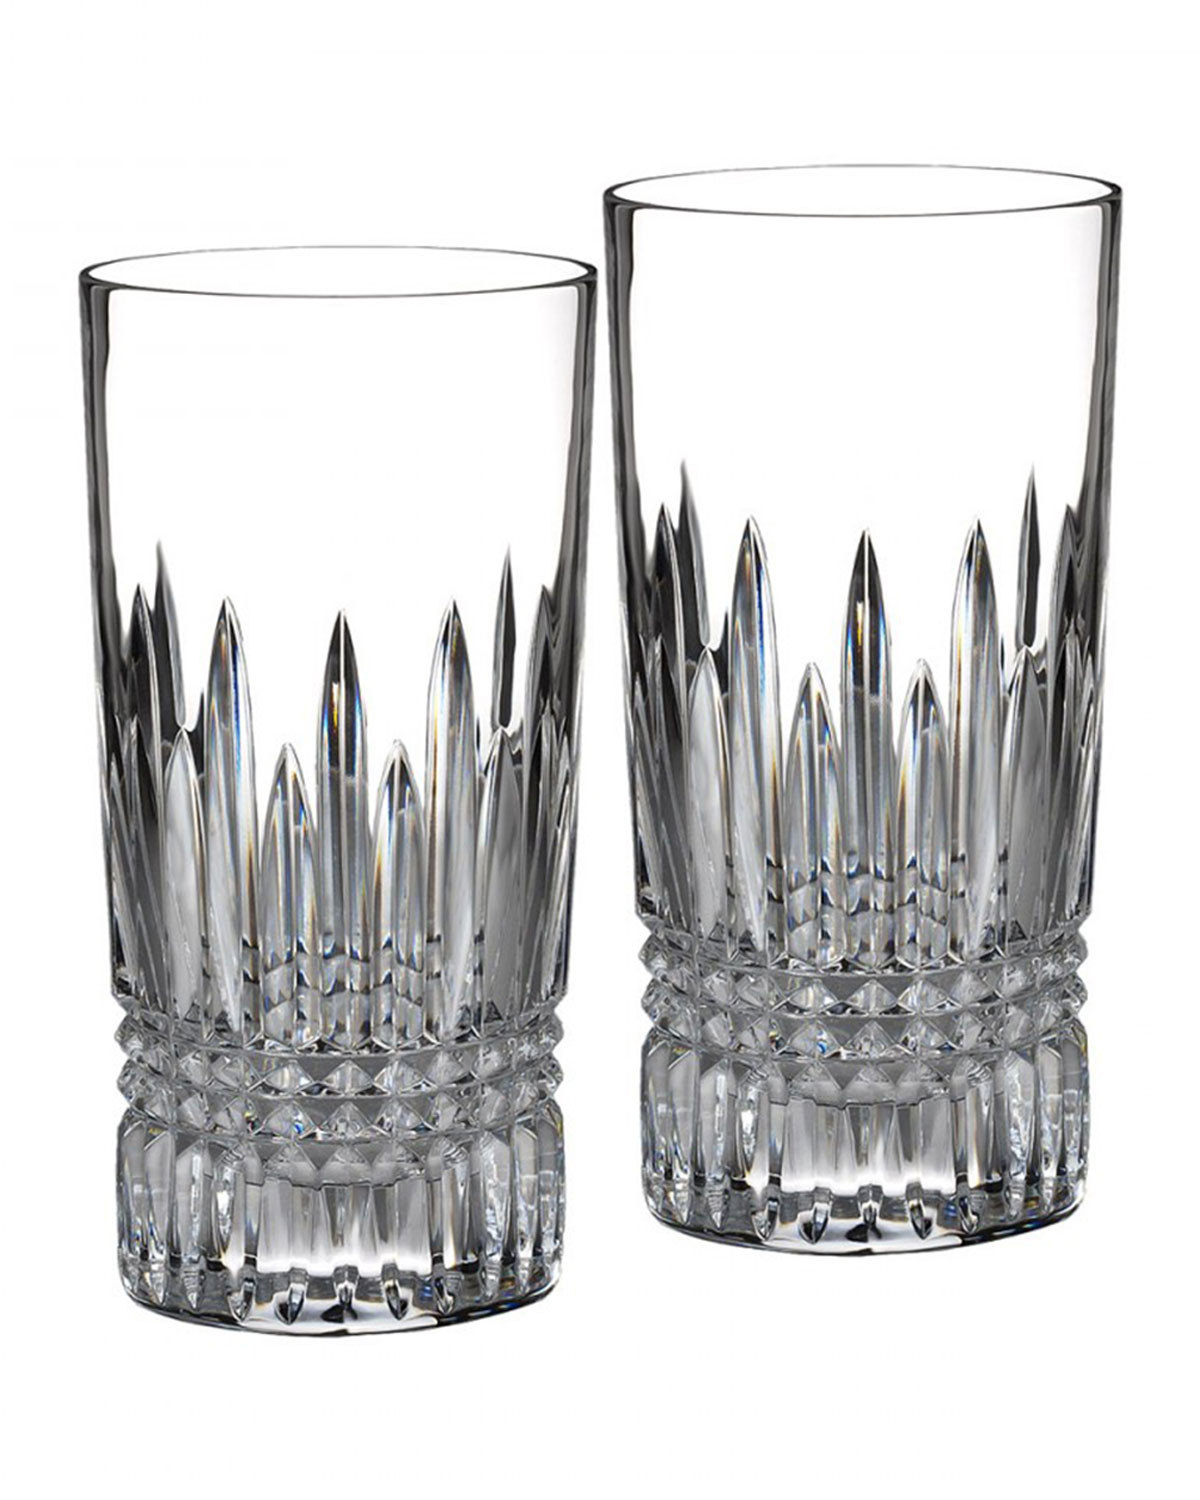 waterford lismore diamond vase of galway crystal longford set of 2 tumblers d o f for waterford crystal lismore diamond highball set of 2